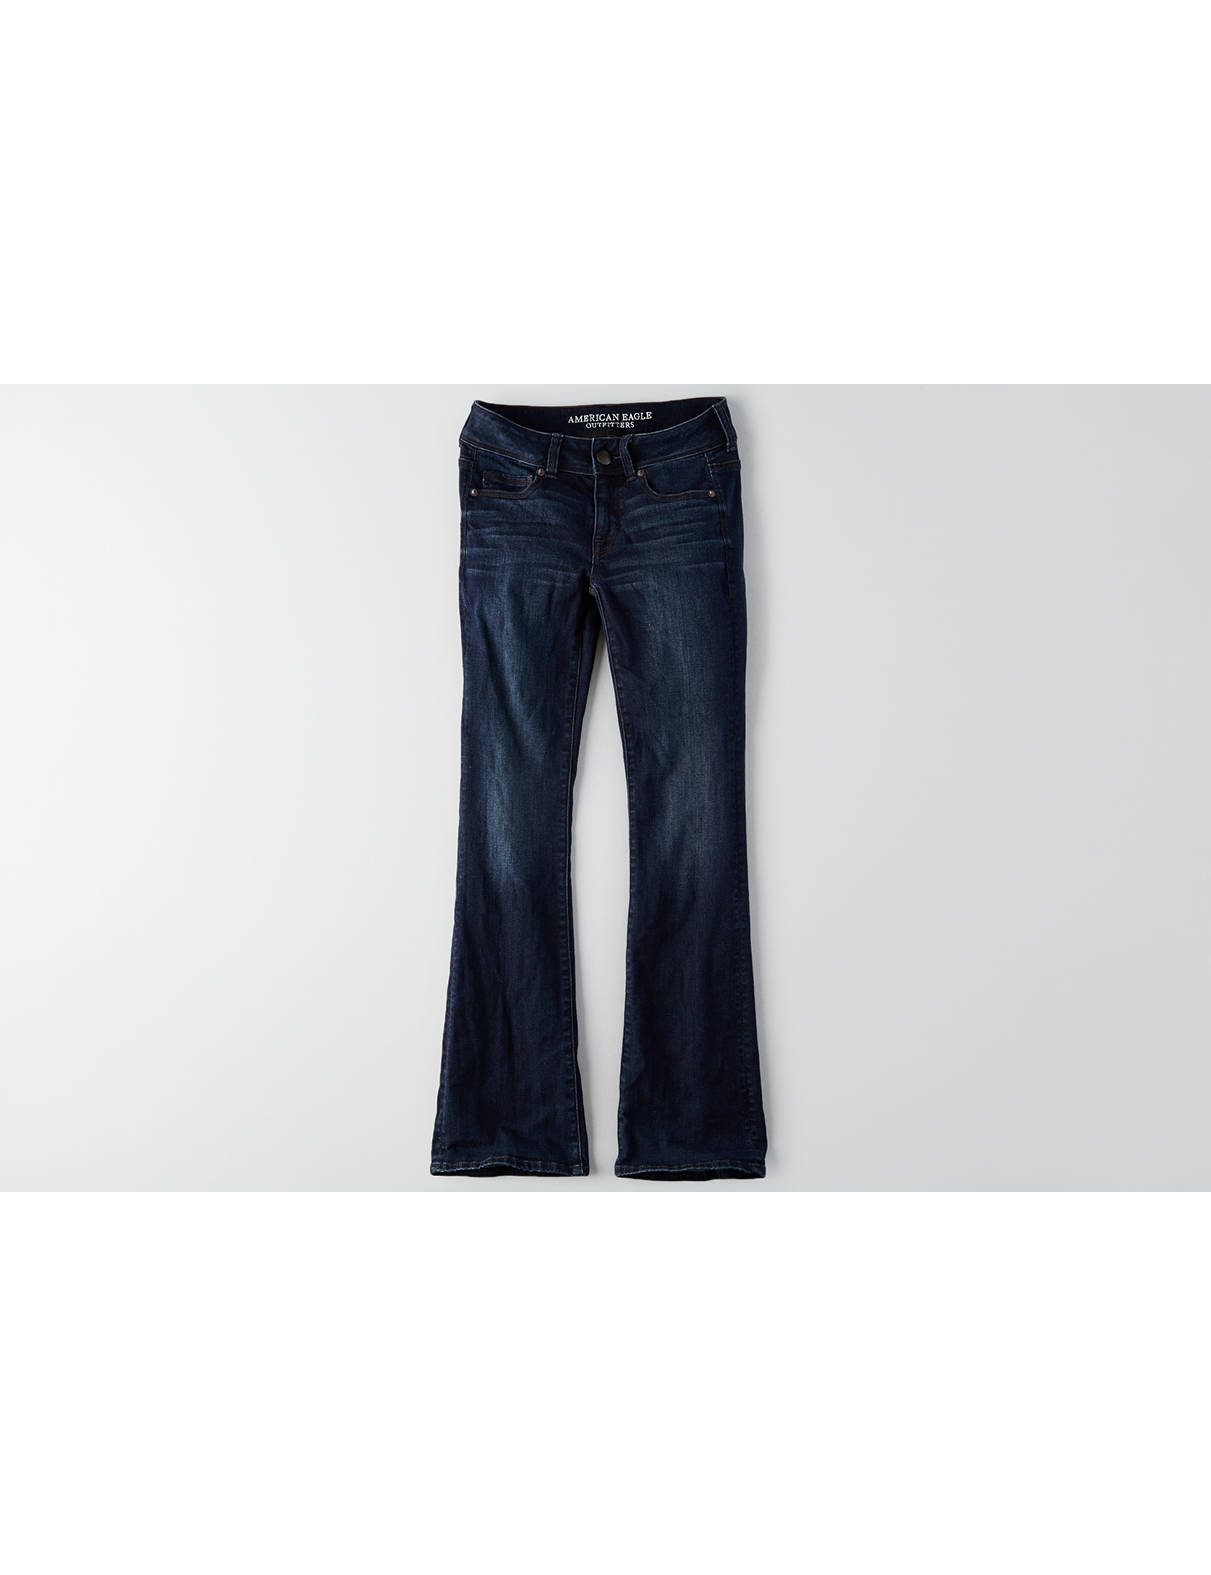 Bootcut Jeans for Women | American Eagle Outfitters